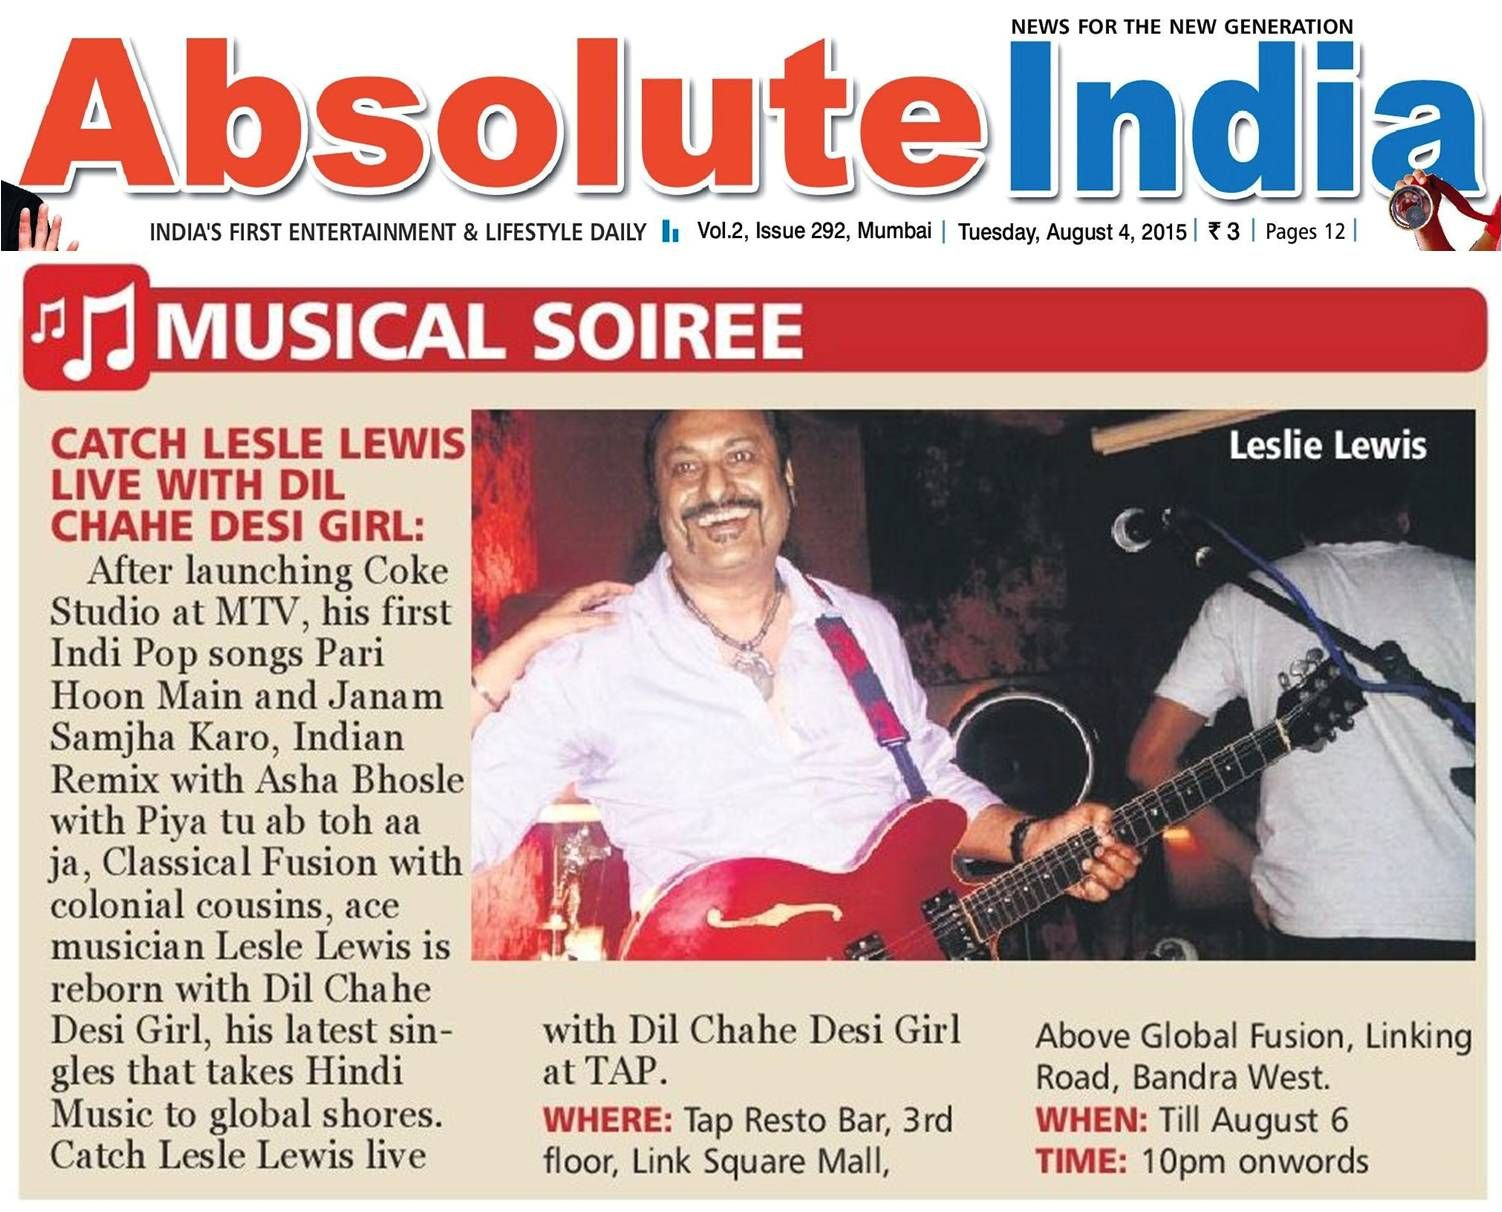 Lesle Lewis Peforms Dil Chahe Desi In Tap Resto Bar Listing Eared Absolute India 4th Aug